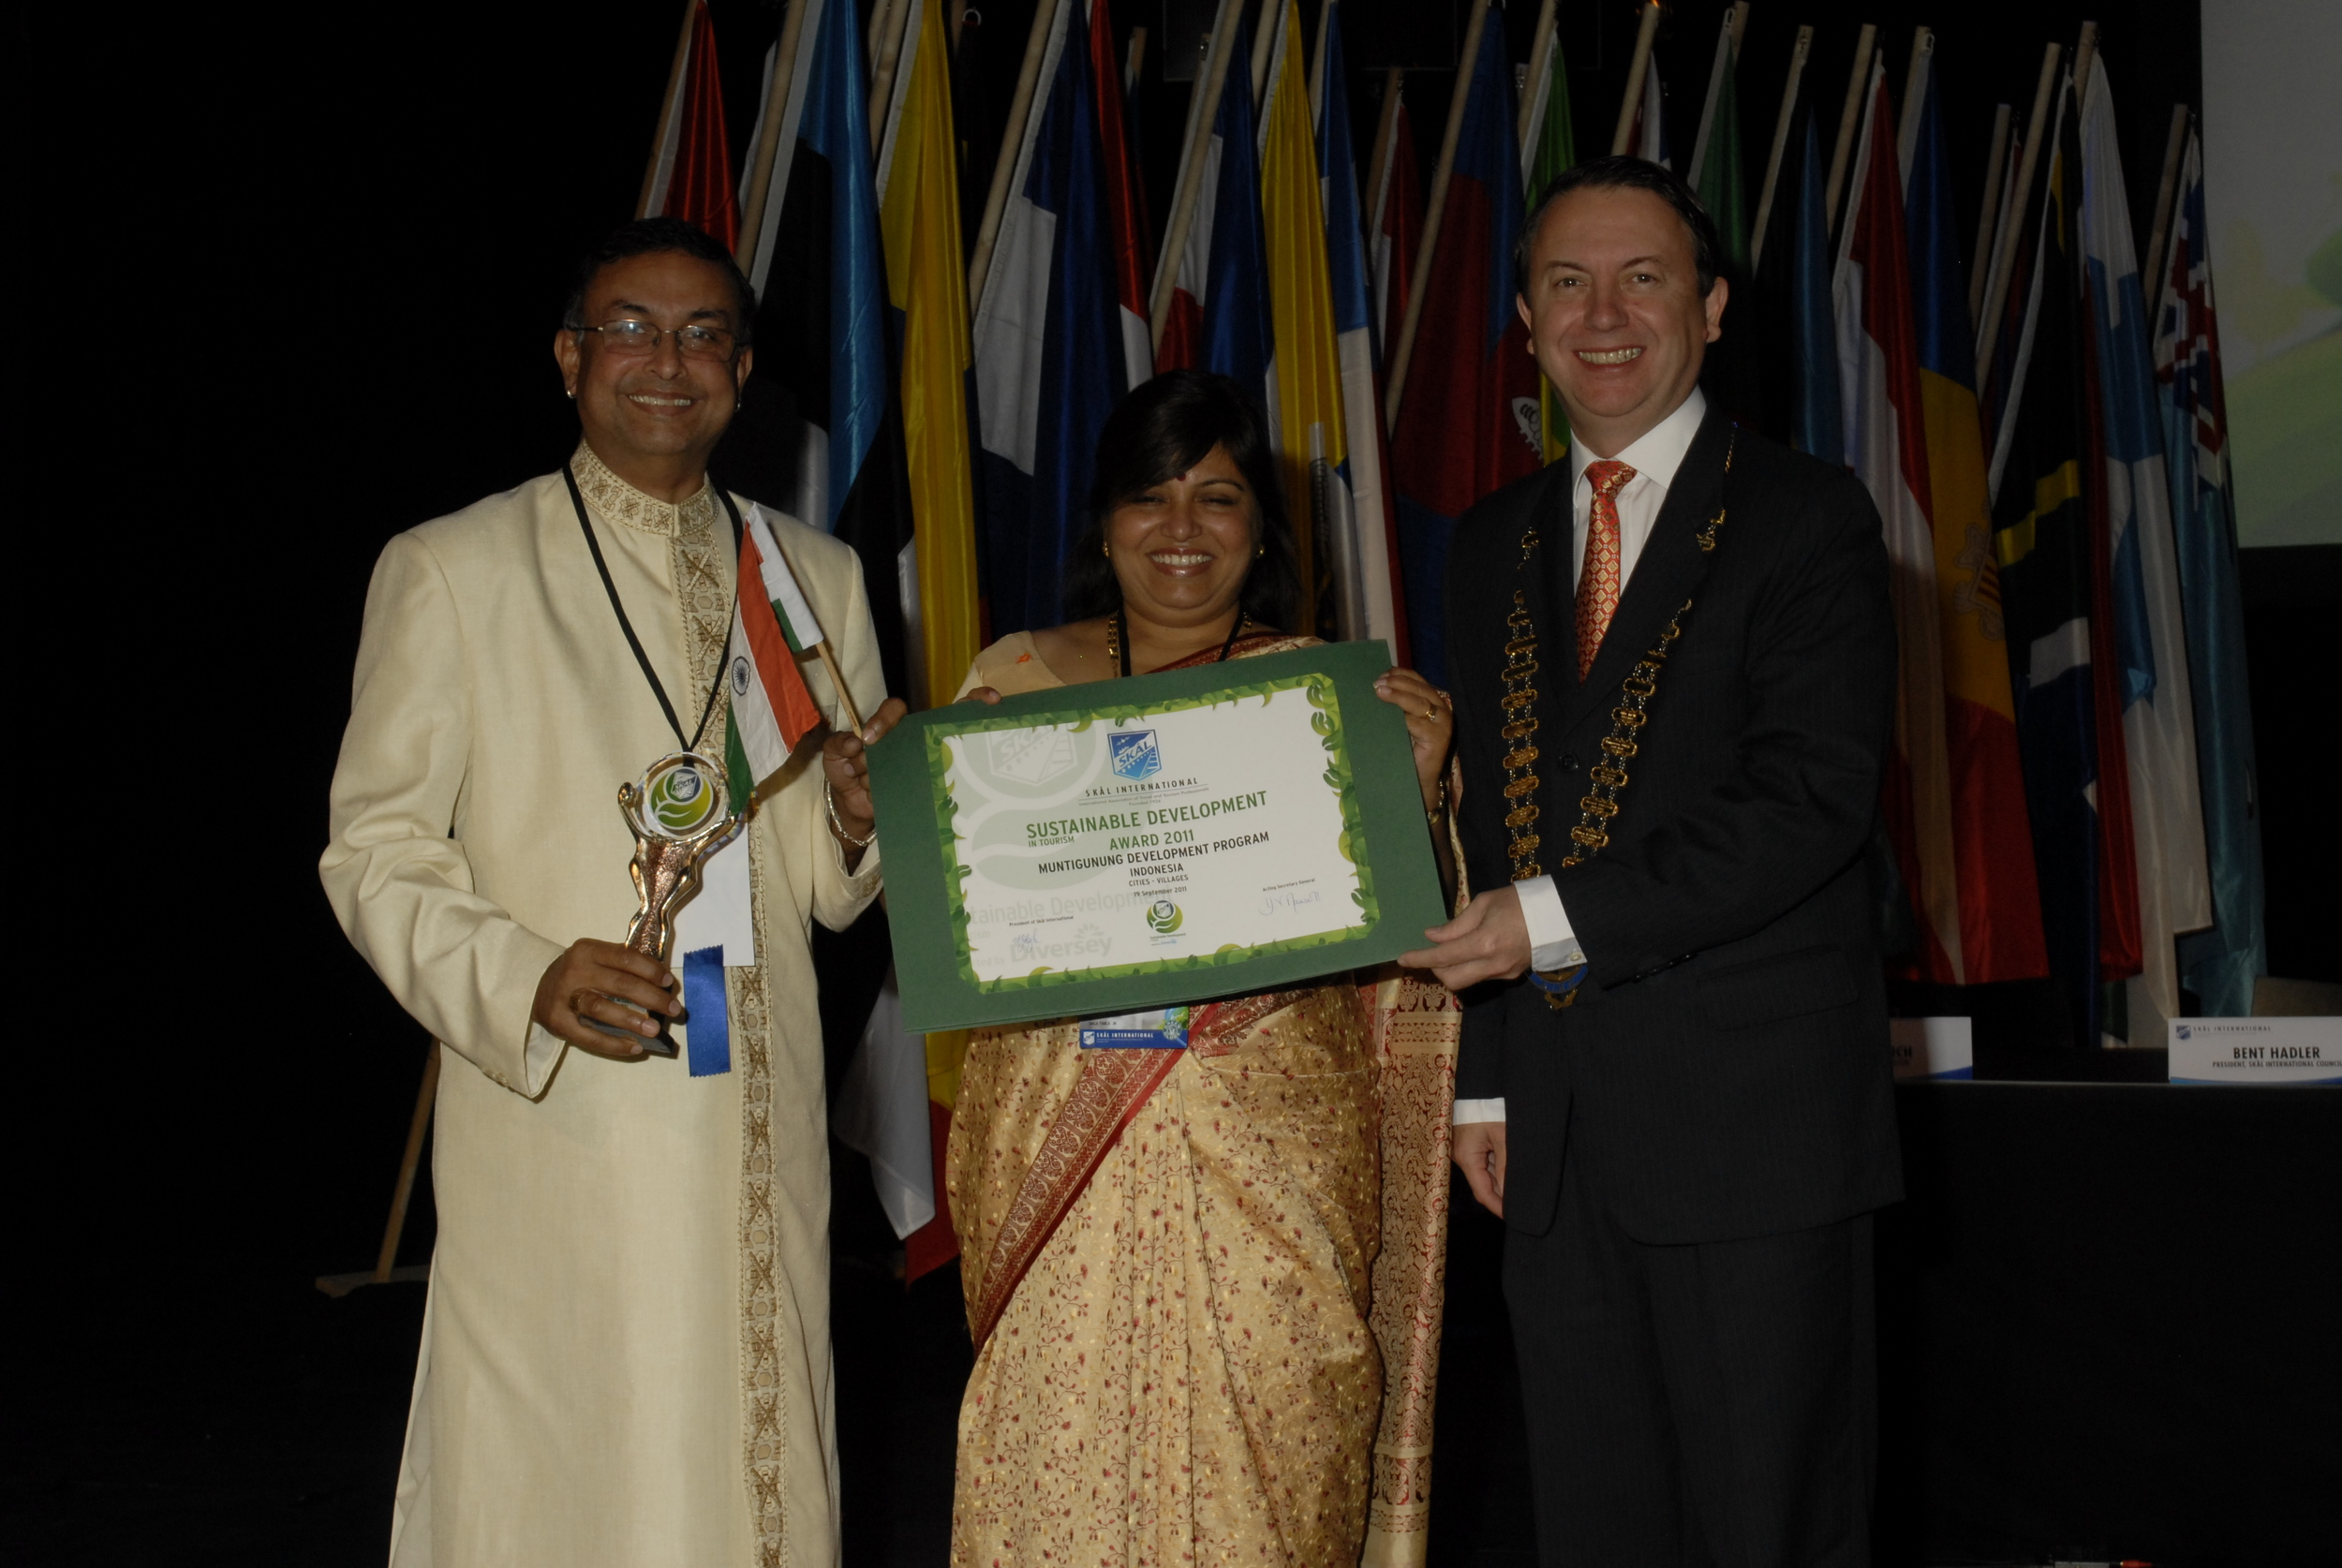 Receiving the SKAL International Award for Sustainability in Finland, 2011